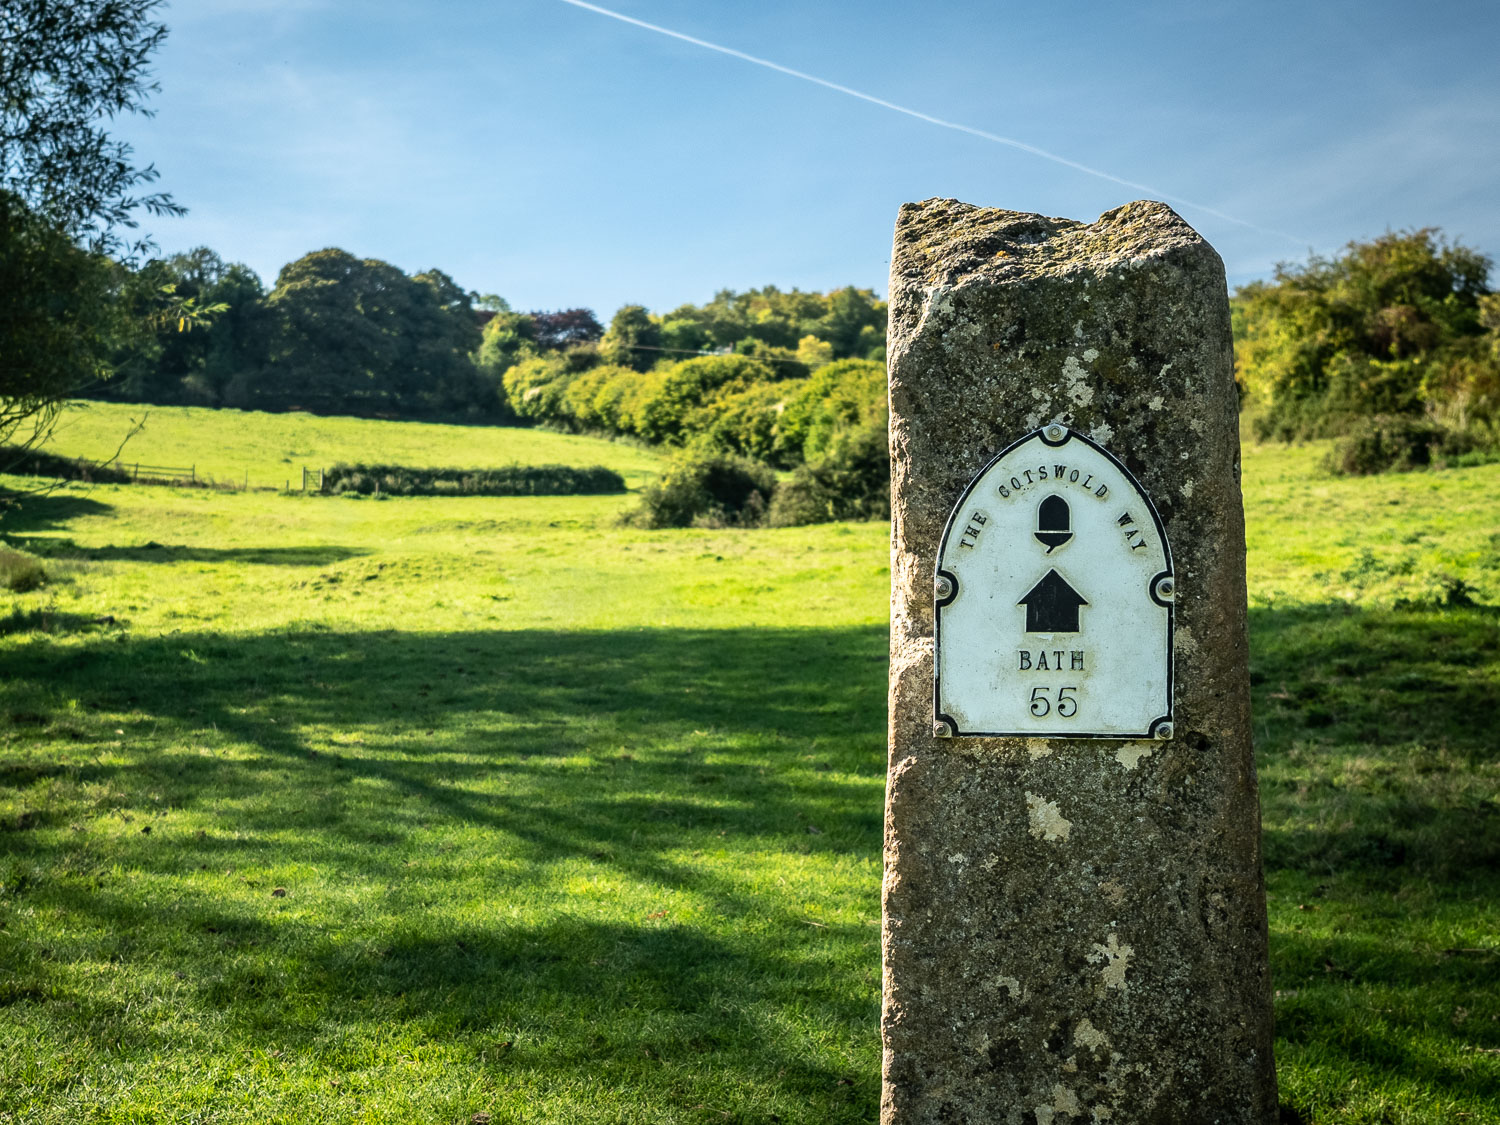 A Photograph Showing The Halfway Milestone On The Cotswold Way, Showing 55 Miles To Bath.